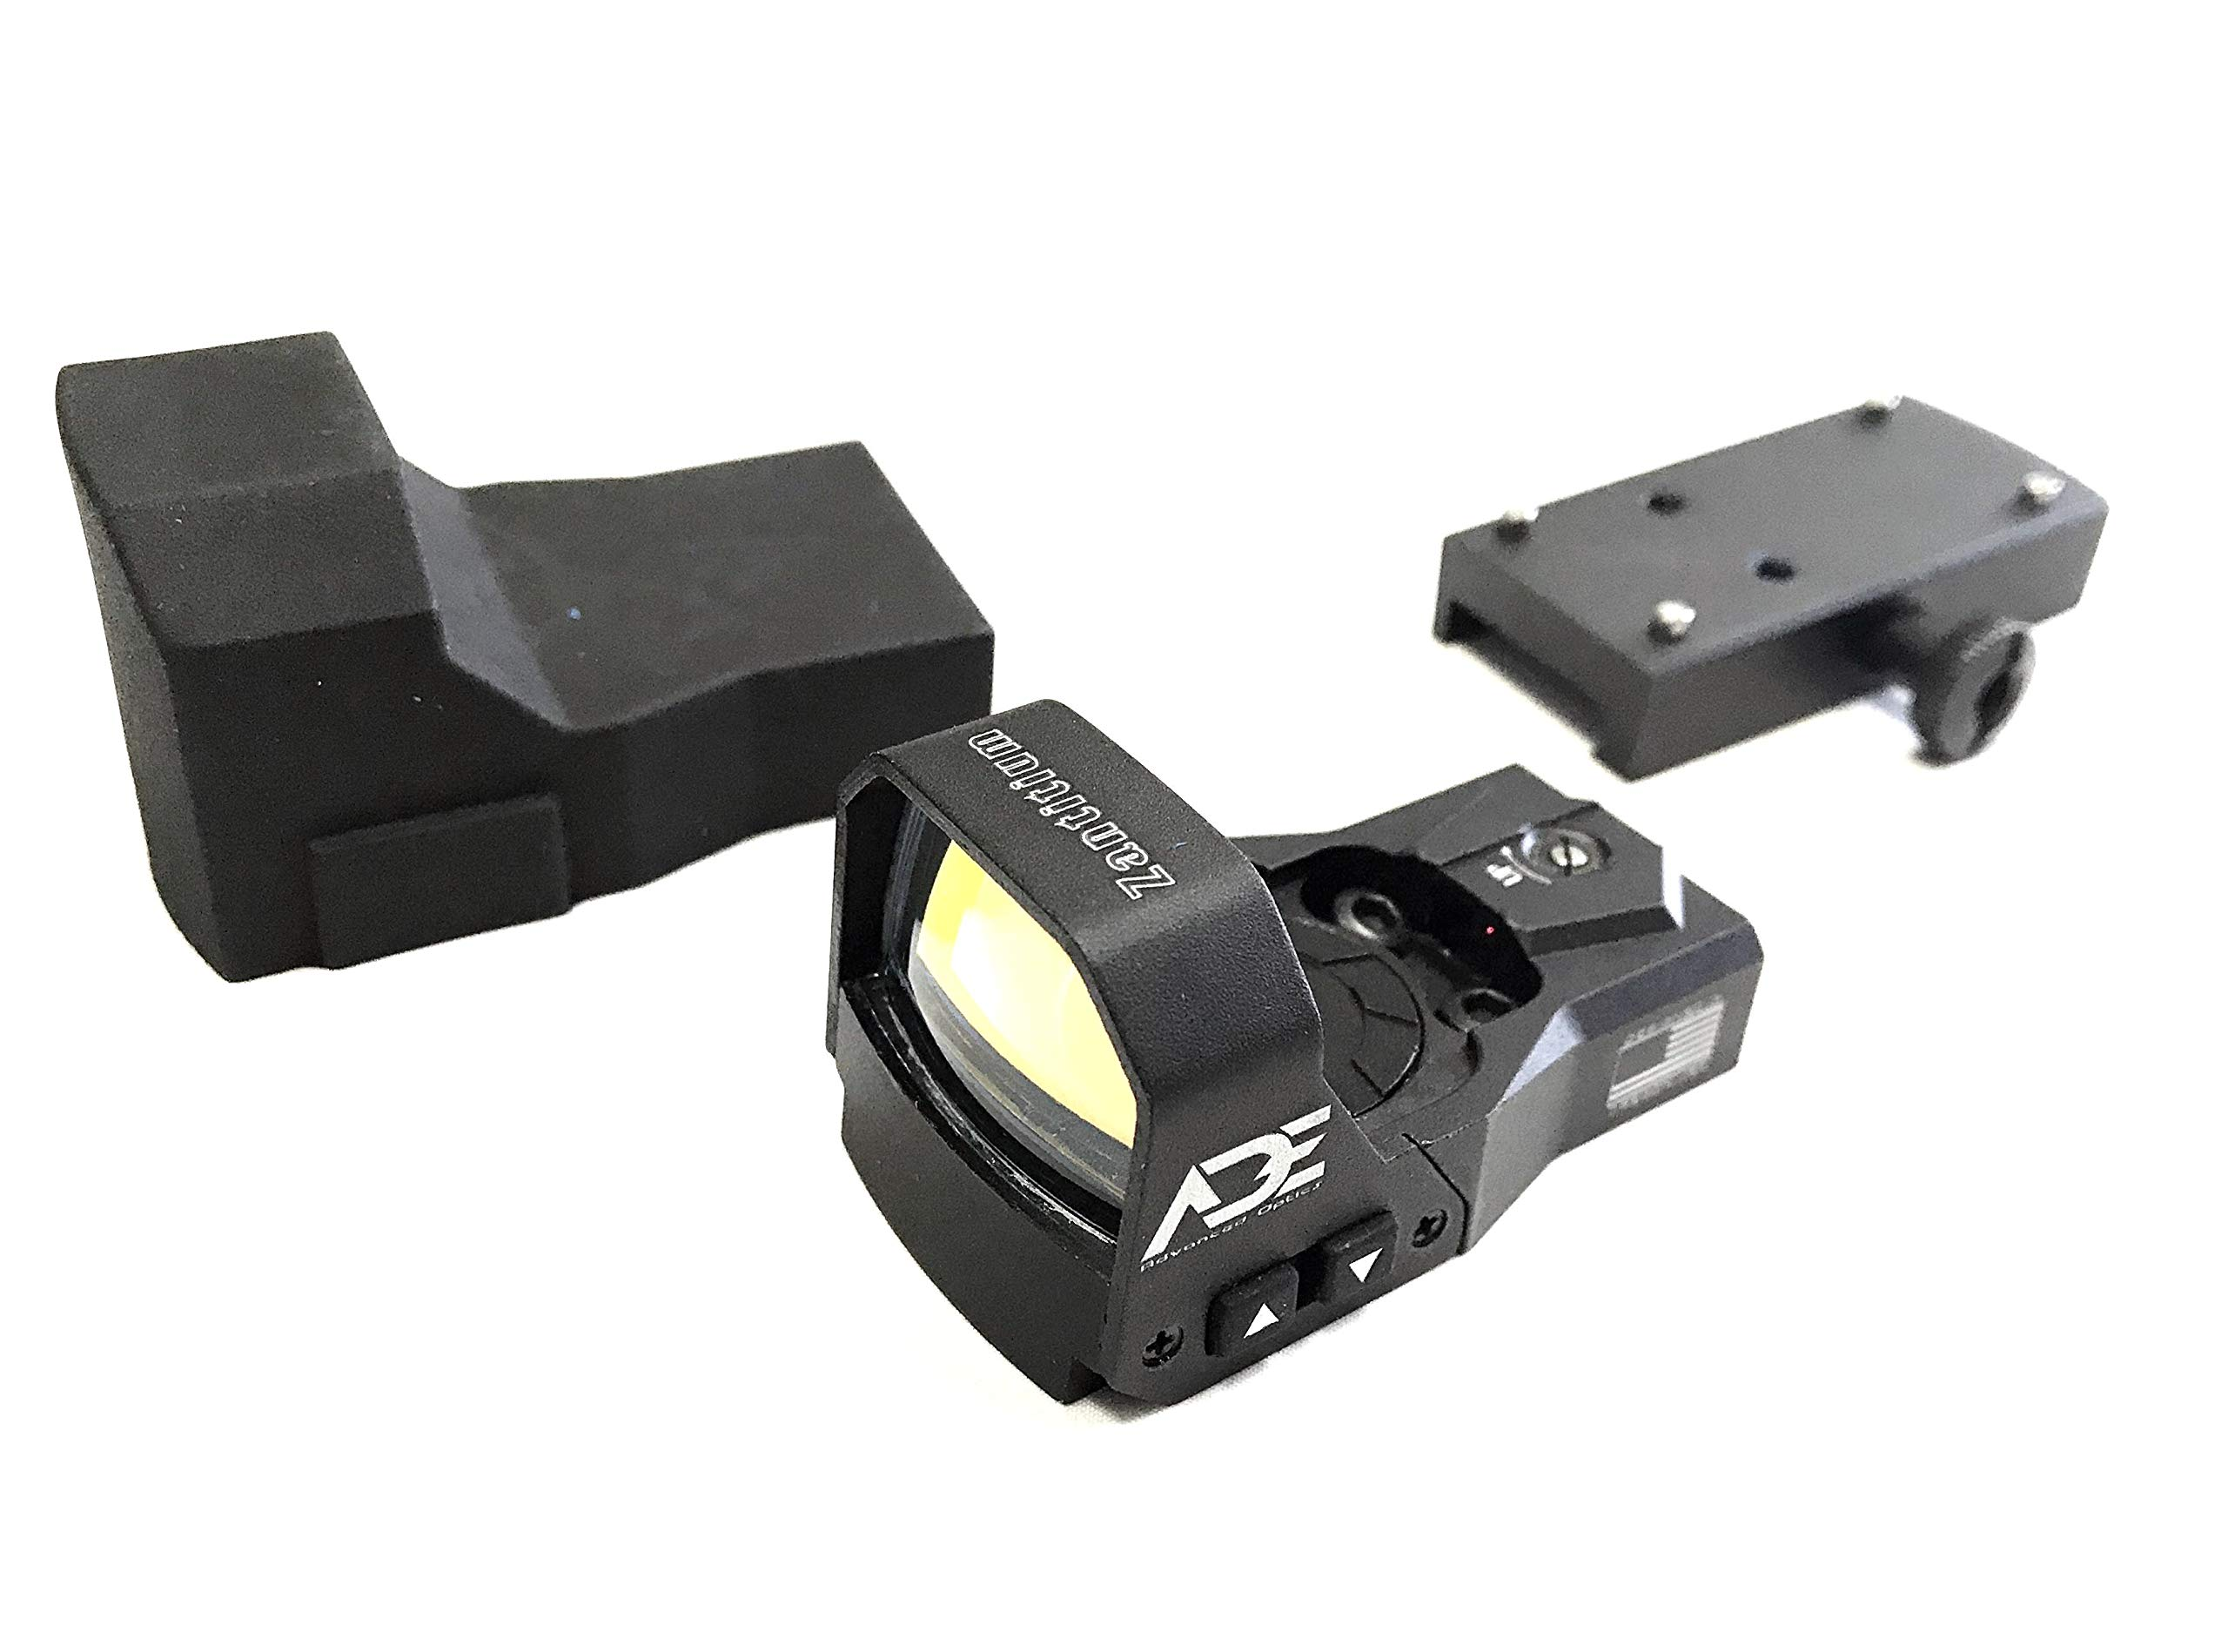 Ade Advanced Optics rd3-015 4MOA Red Dot Micro Mini Reflex Sight for Handgun with 40000 Battery Life ... by Ade Advanced Optics